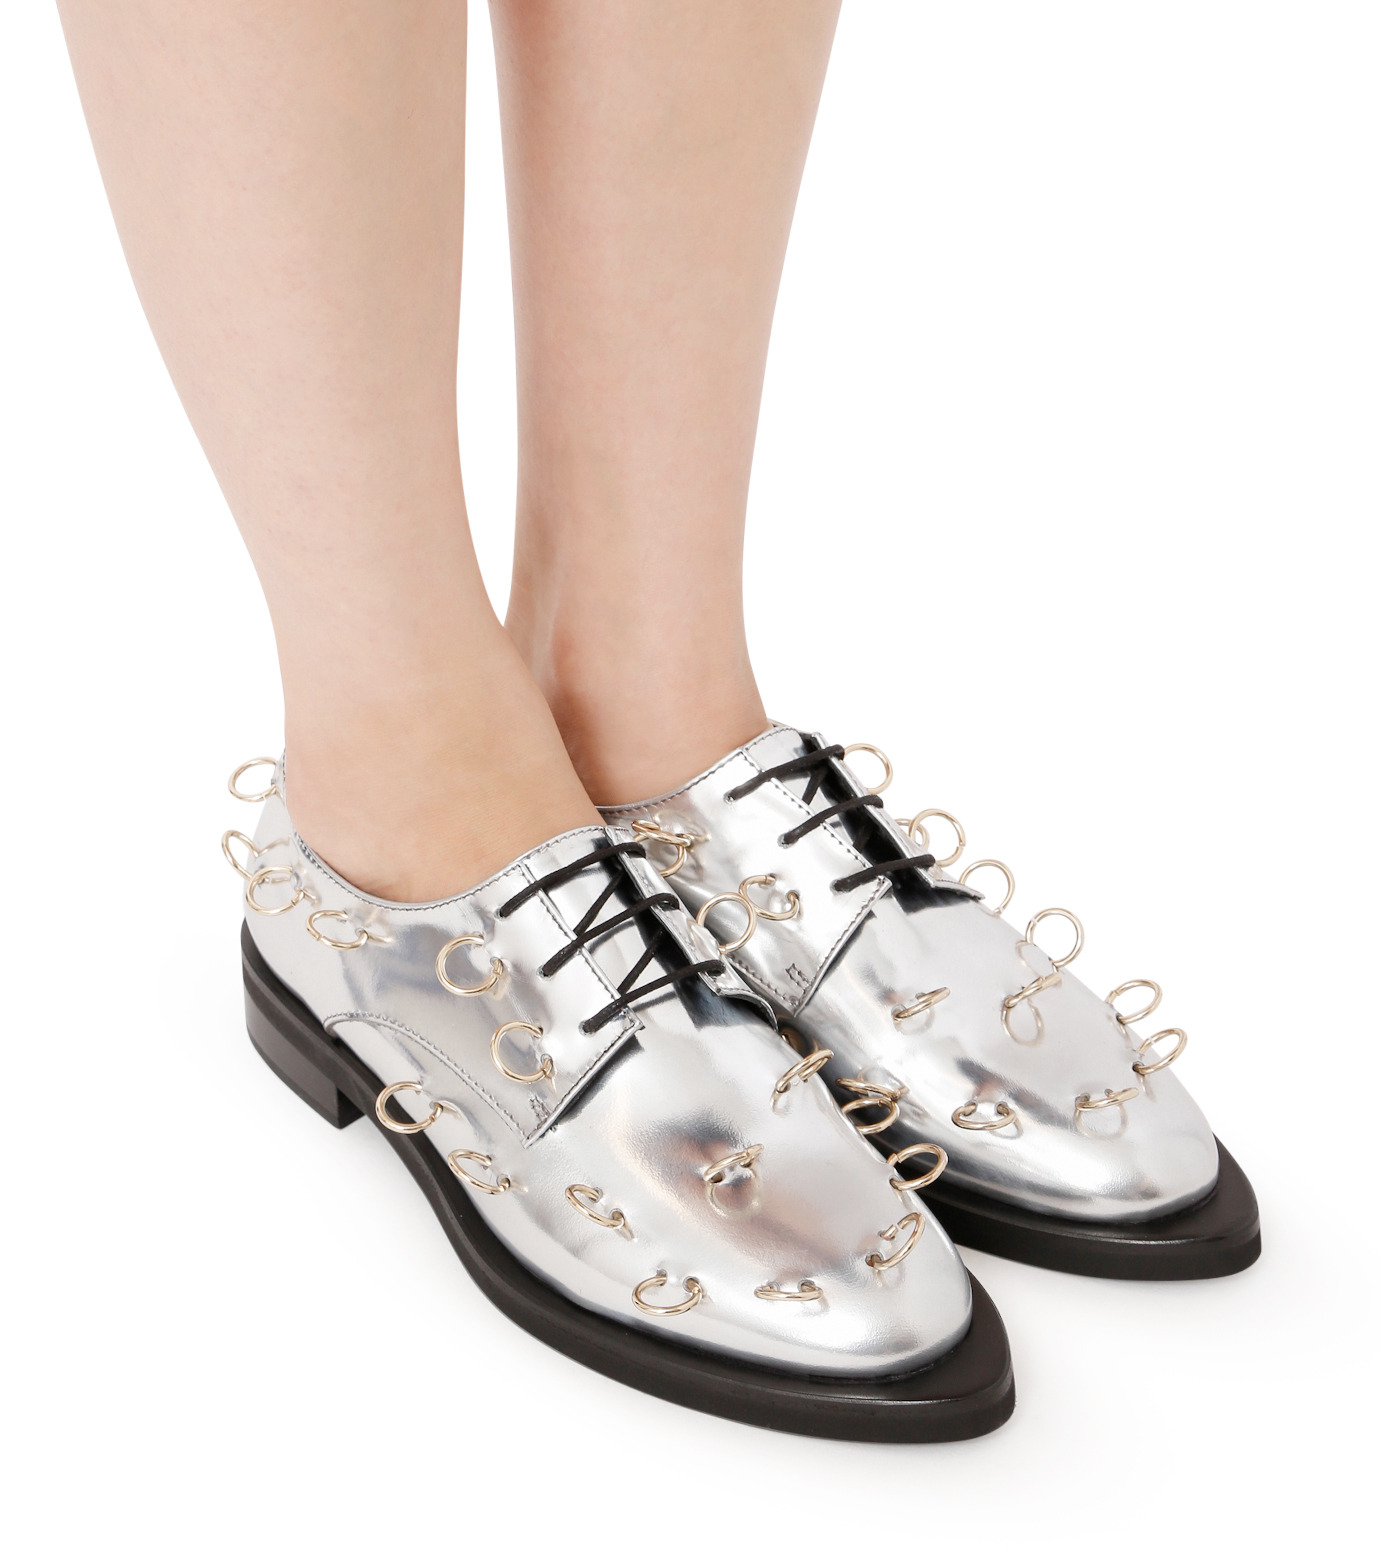 Coliac(コリアック)のRei Rings-SILVER(フラットシューズ/Flat shoes)-64CC124-1 拡大詳細画像5